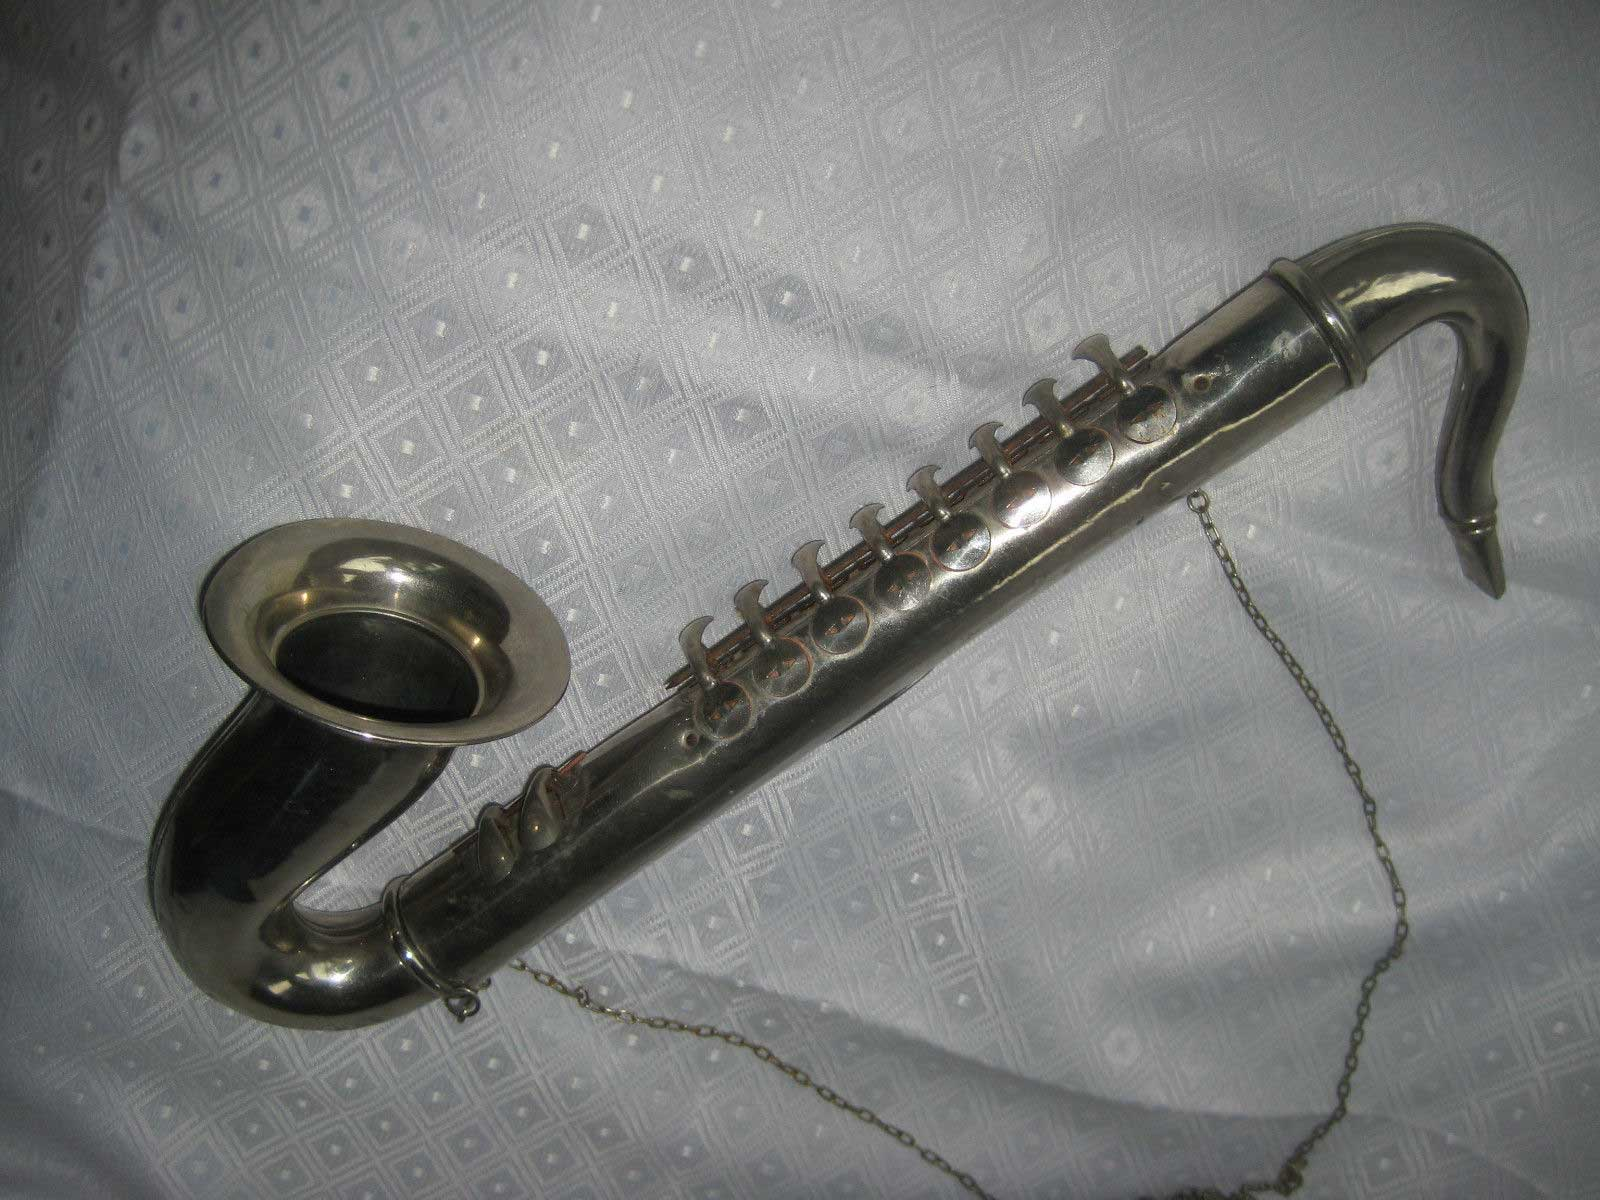 The Melody Saxophone, German-made blow accordion, vintage tin toy, vintage musical instrument